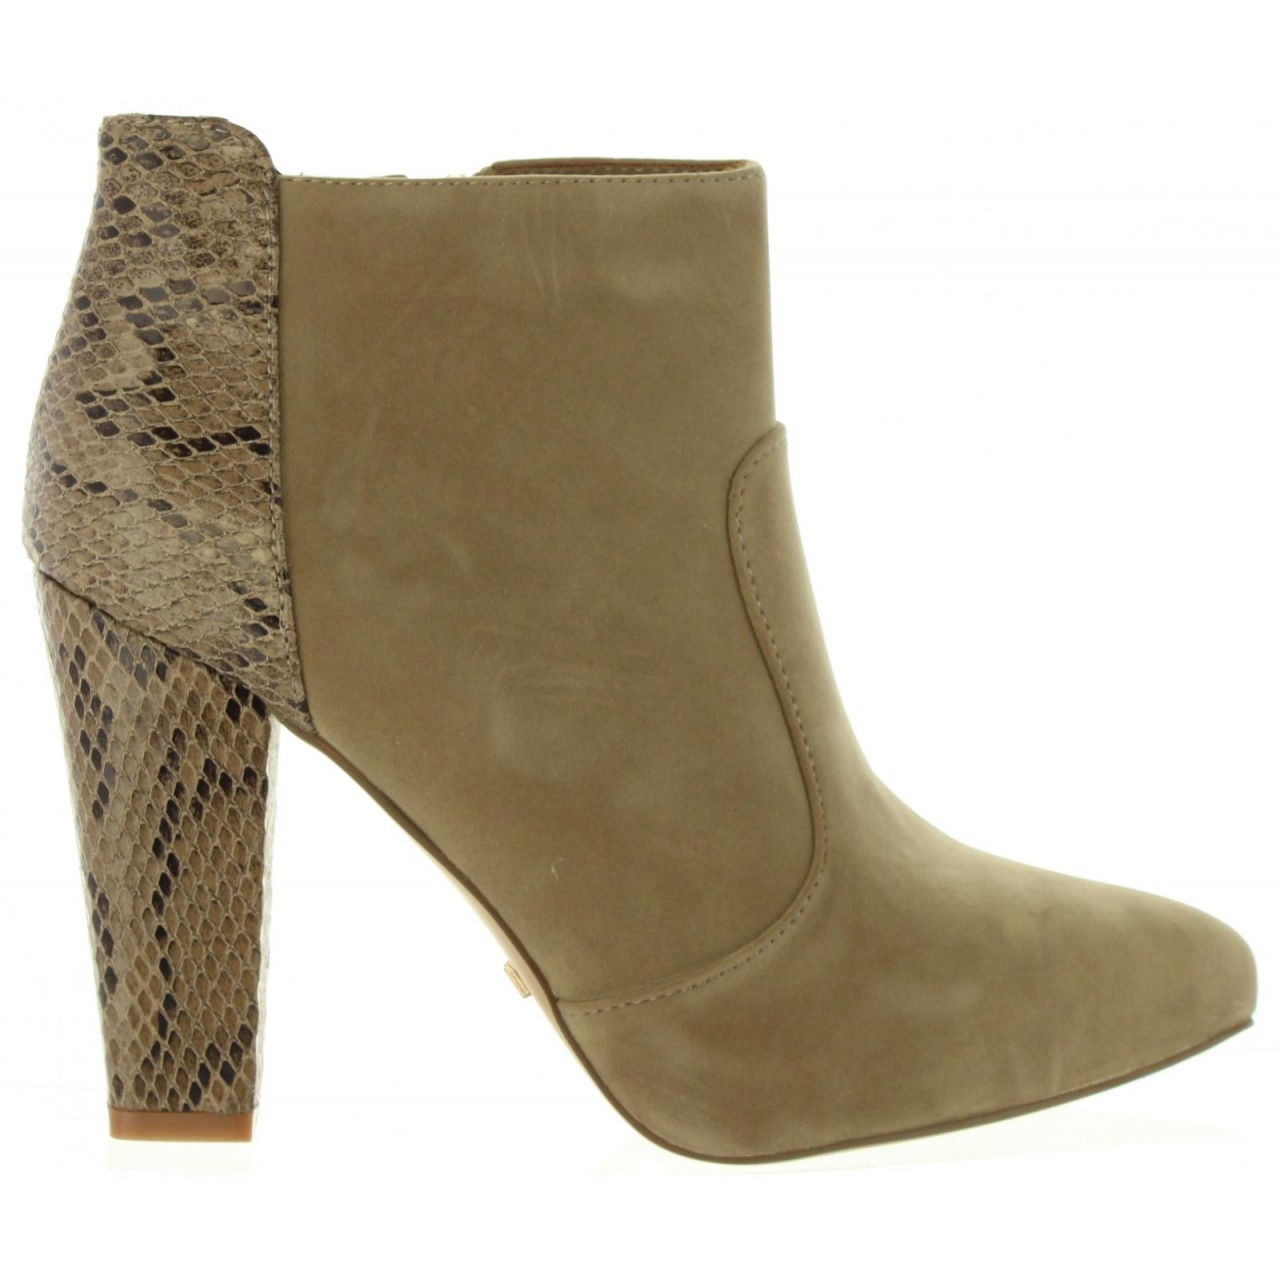 5be16a3d84b Botines de Mujer MARIA MARE 61378 C28290 PEACH TAUPE